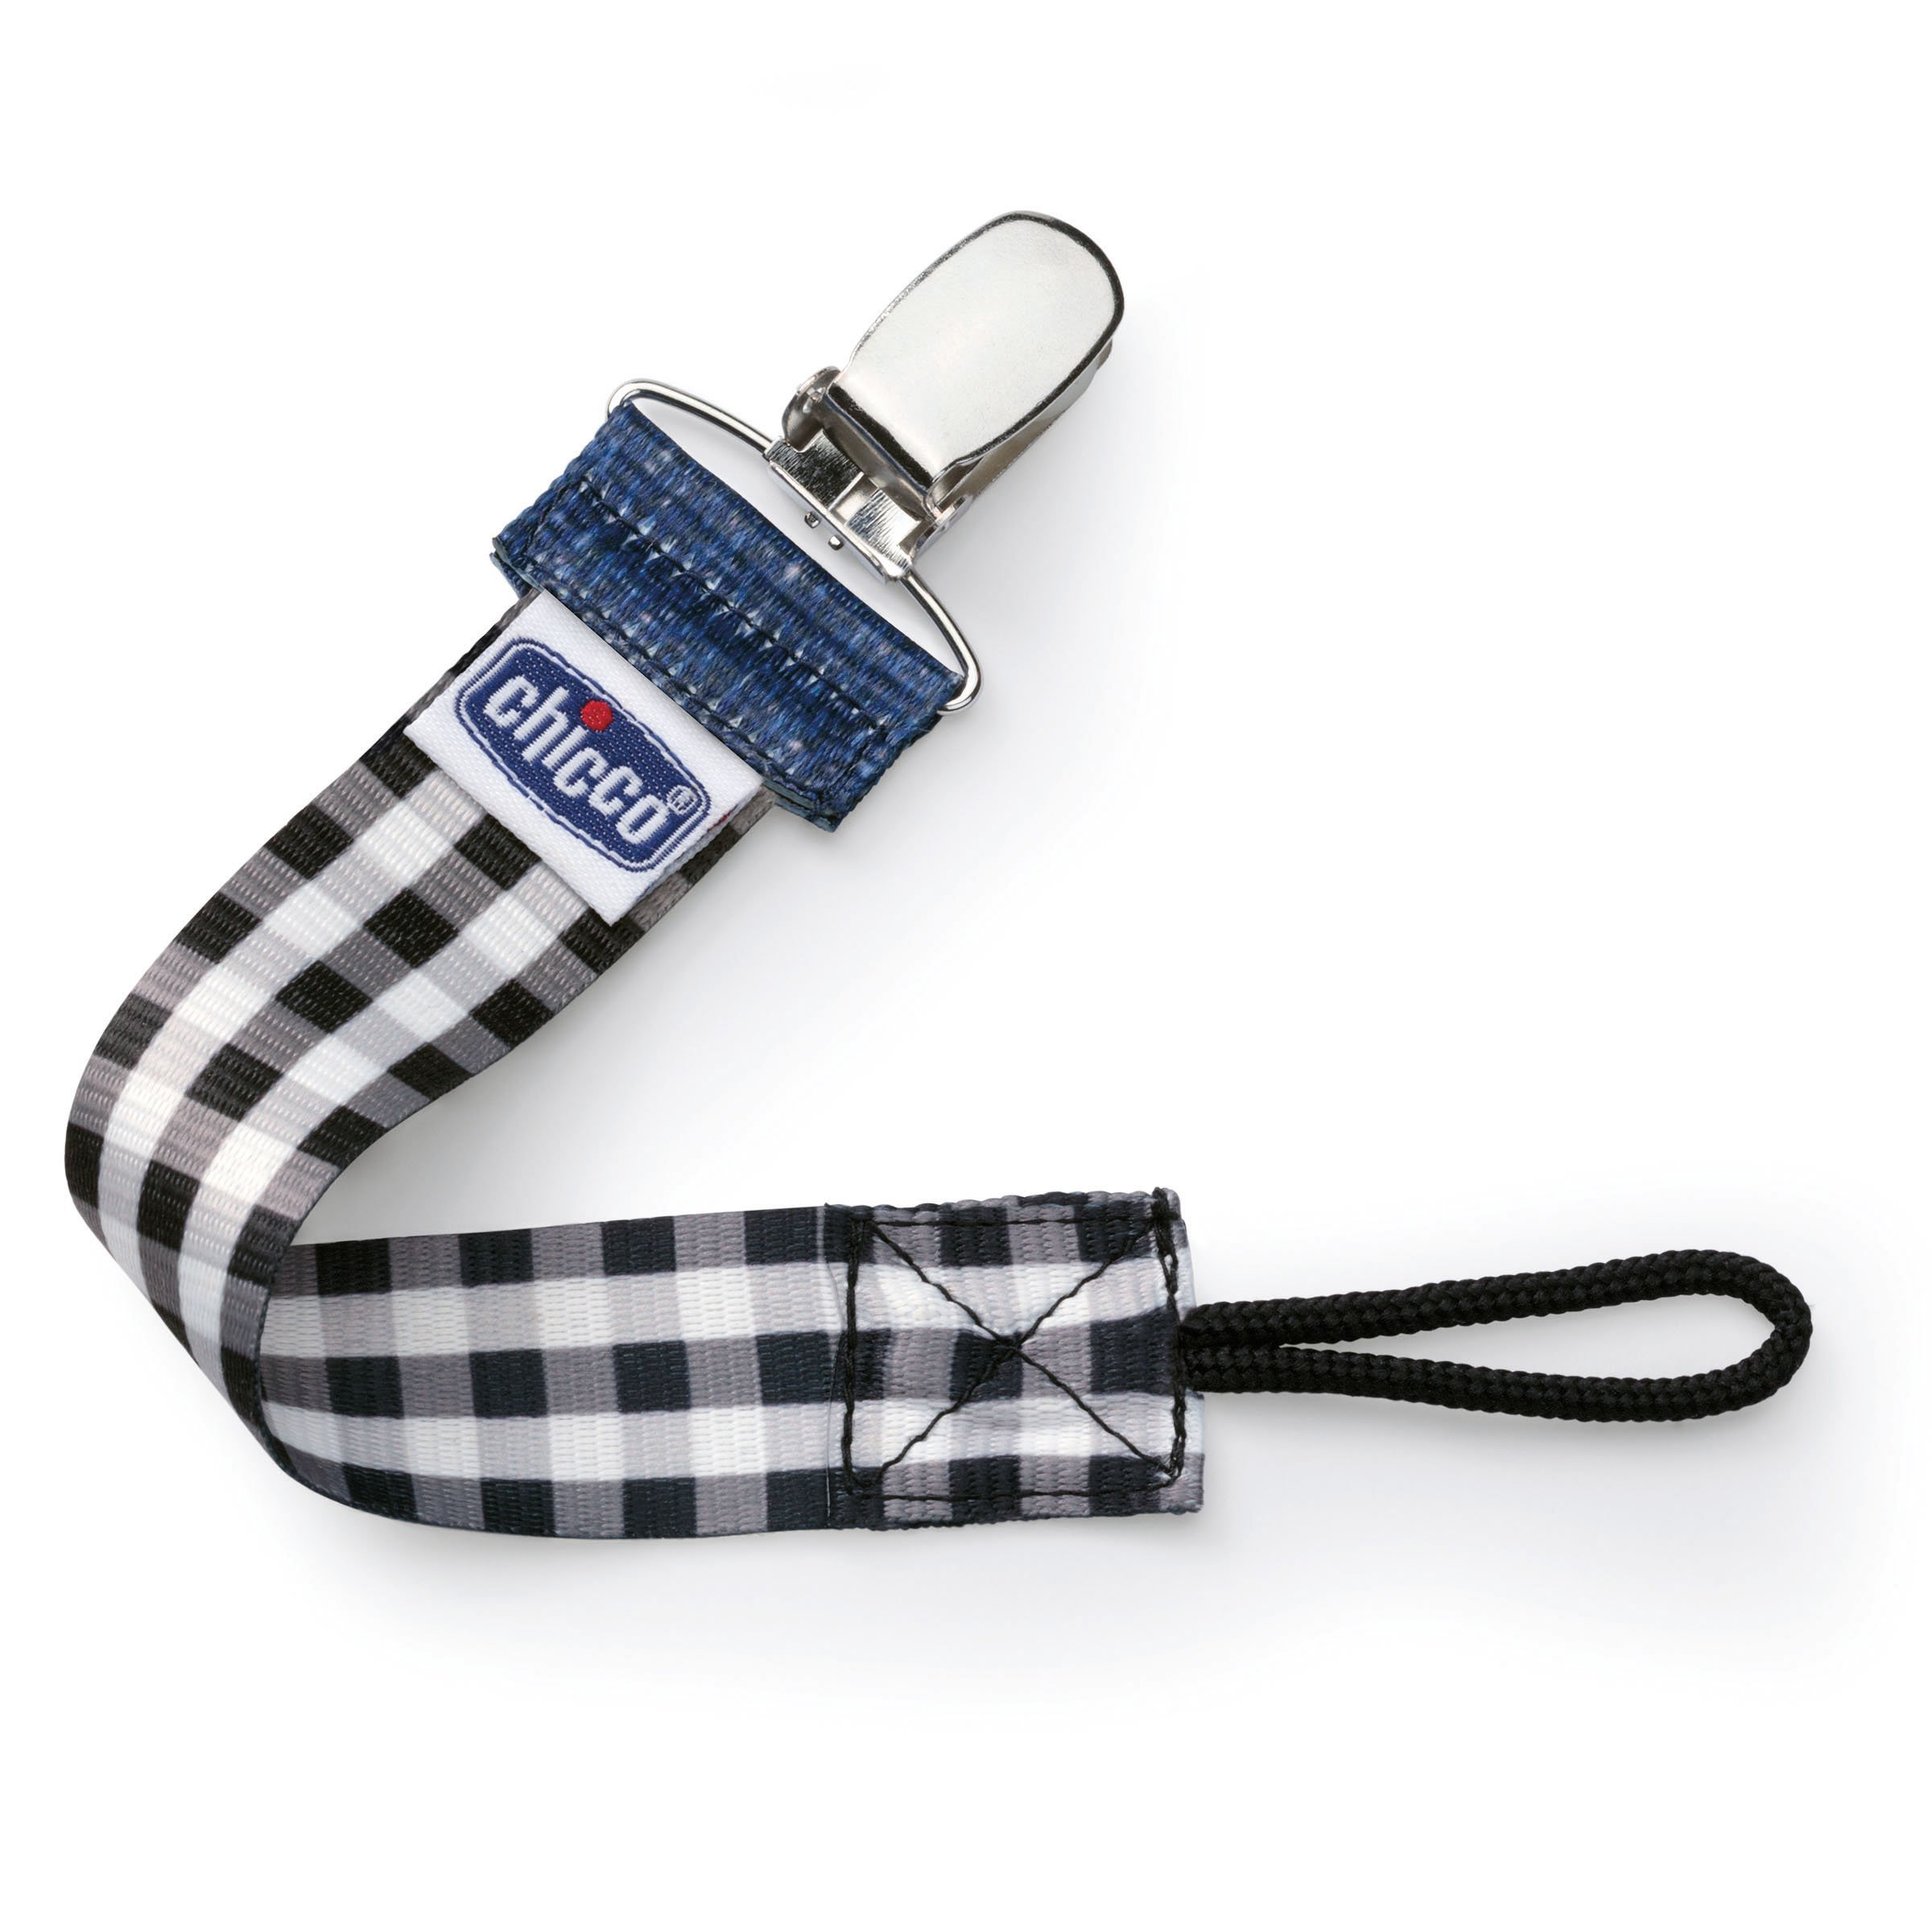 Chicco Fashion Pacifier Clip, Black Gingham by Chicco